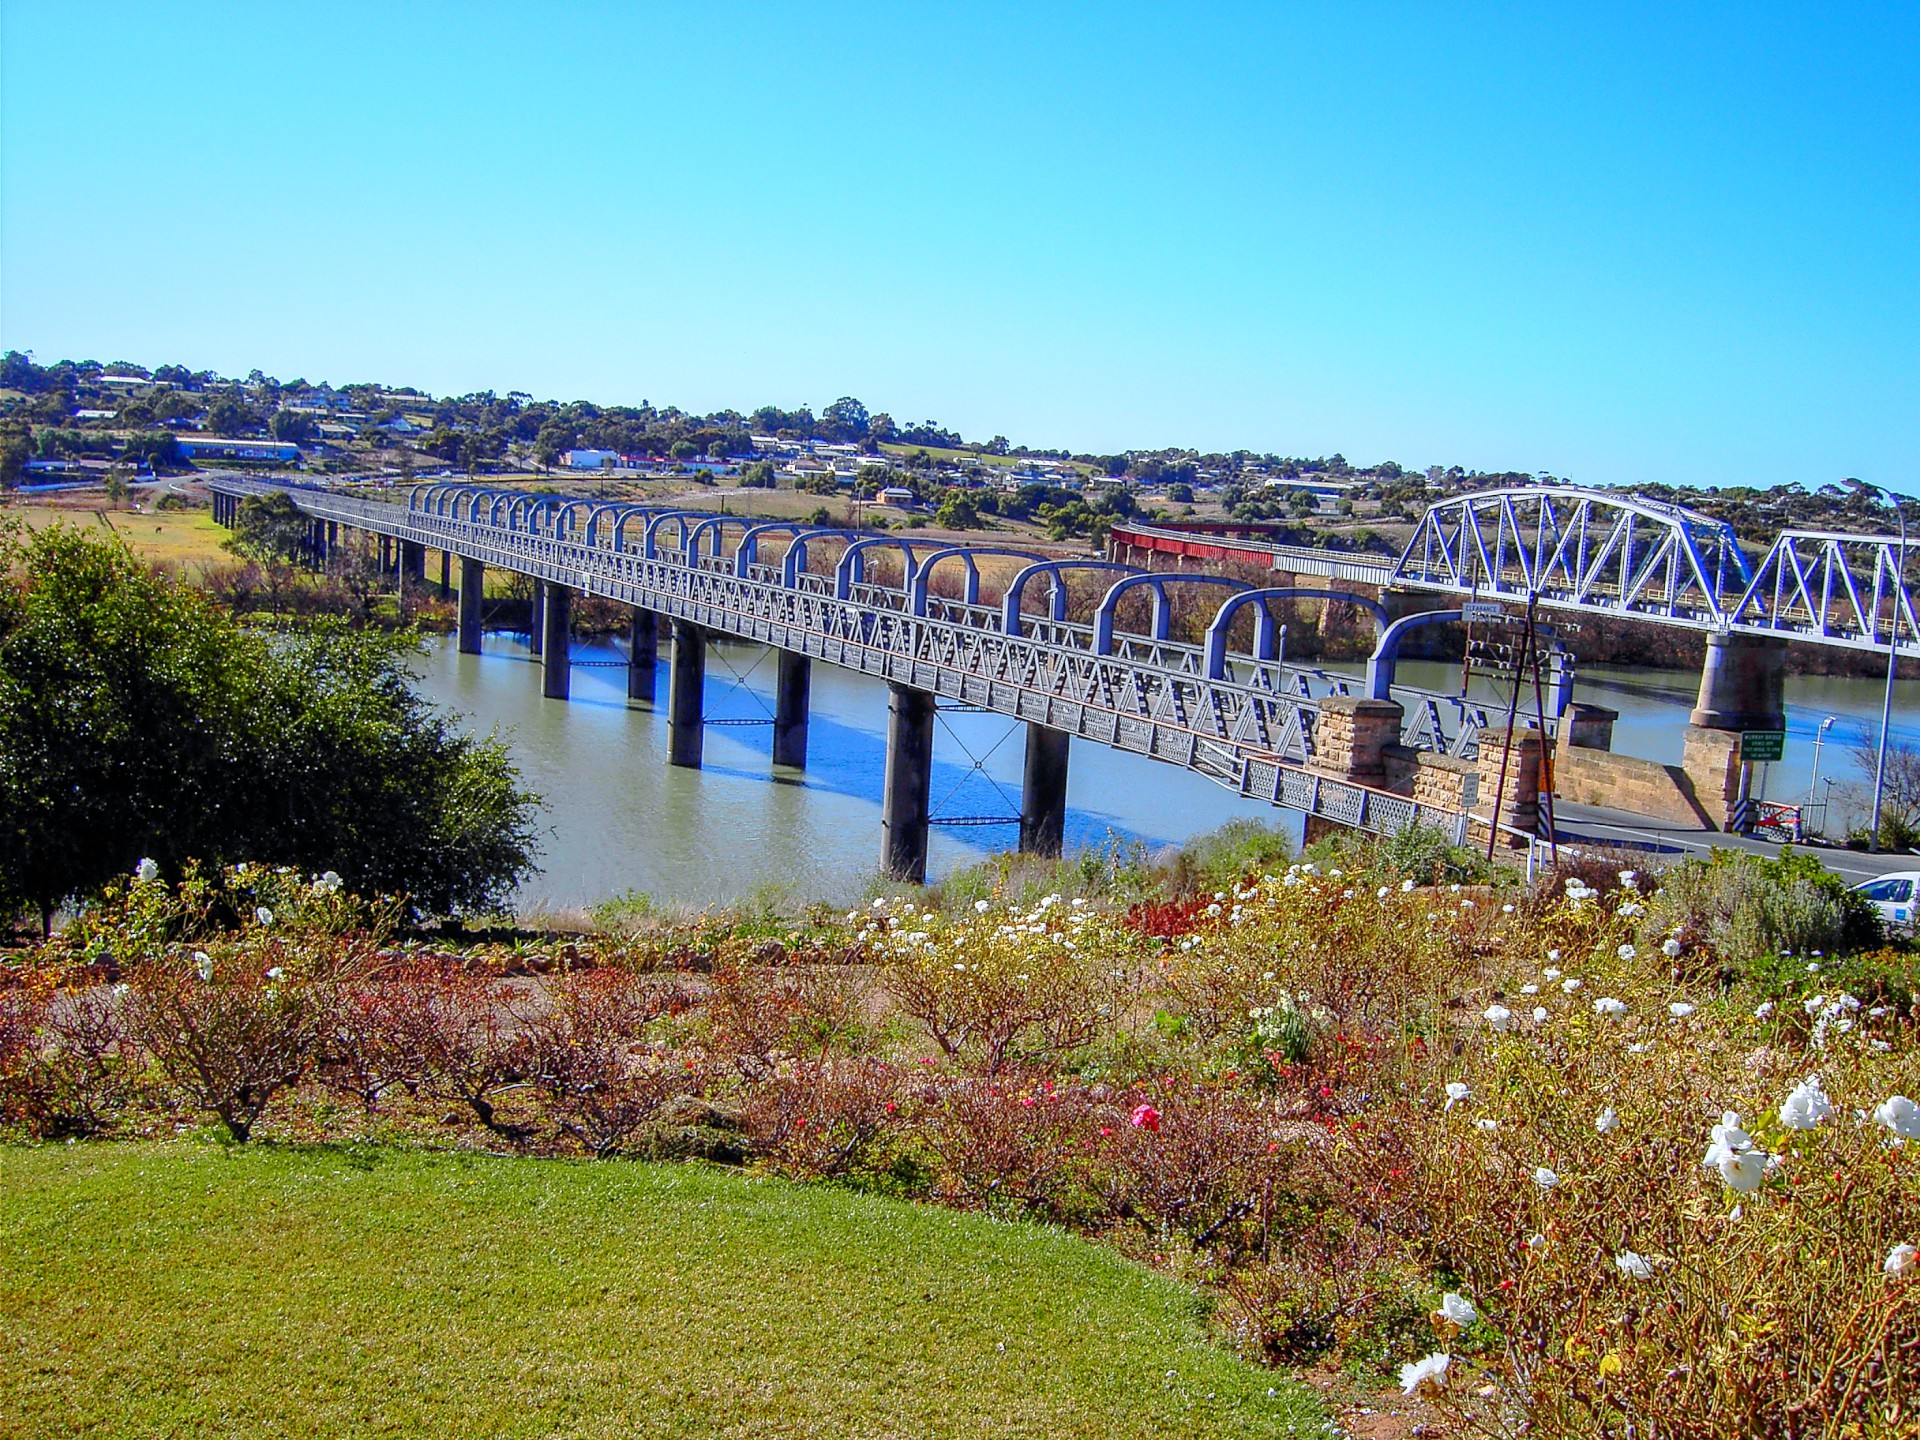 Murray Bridge Image 1